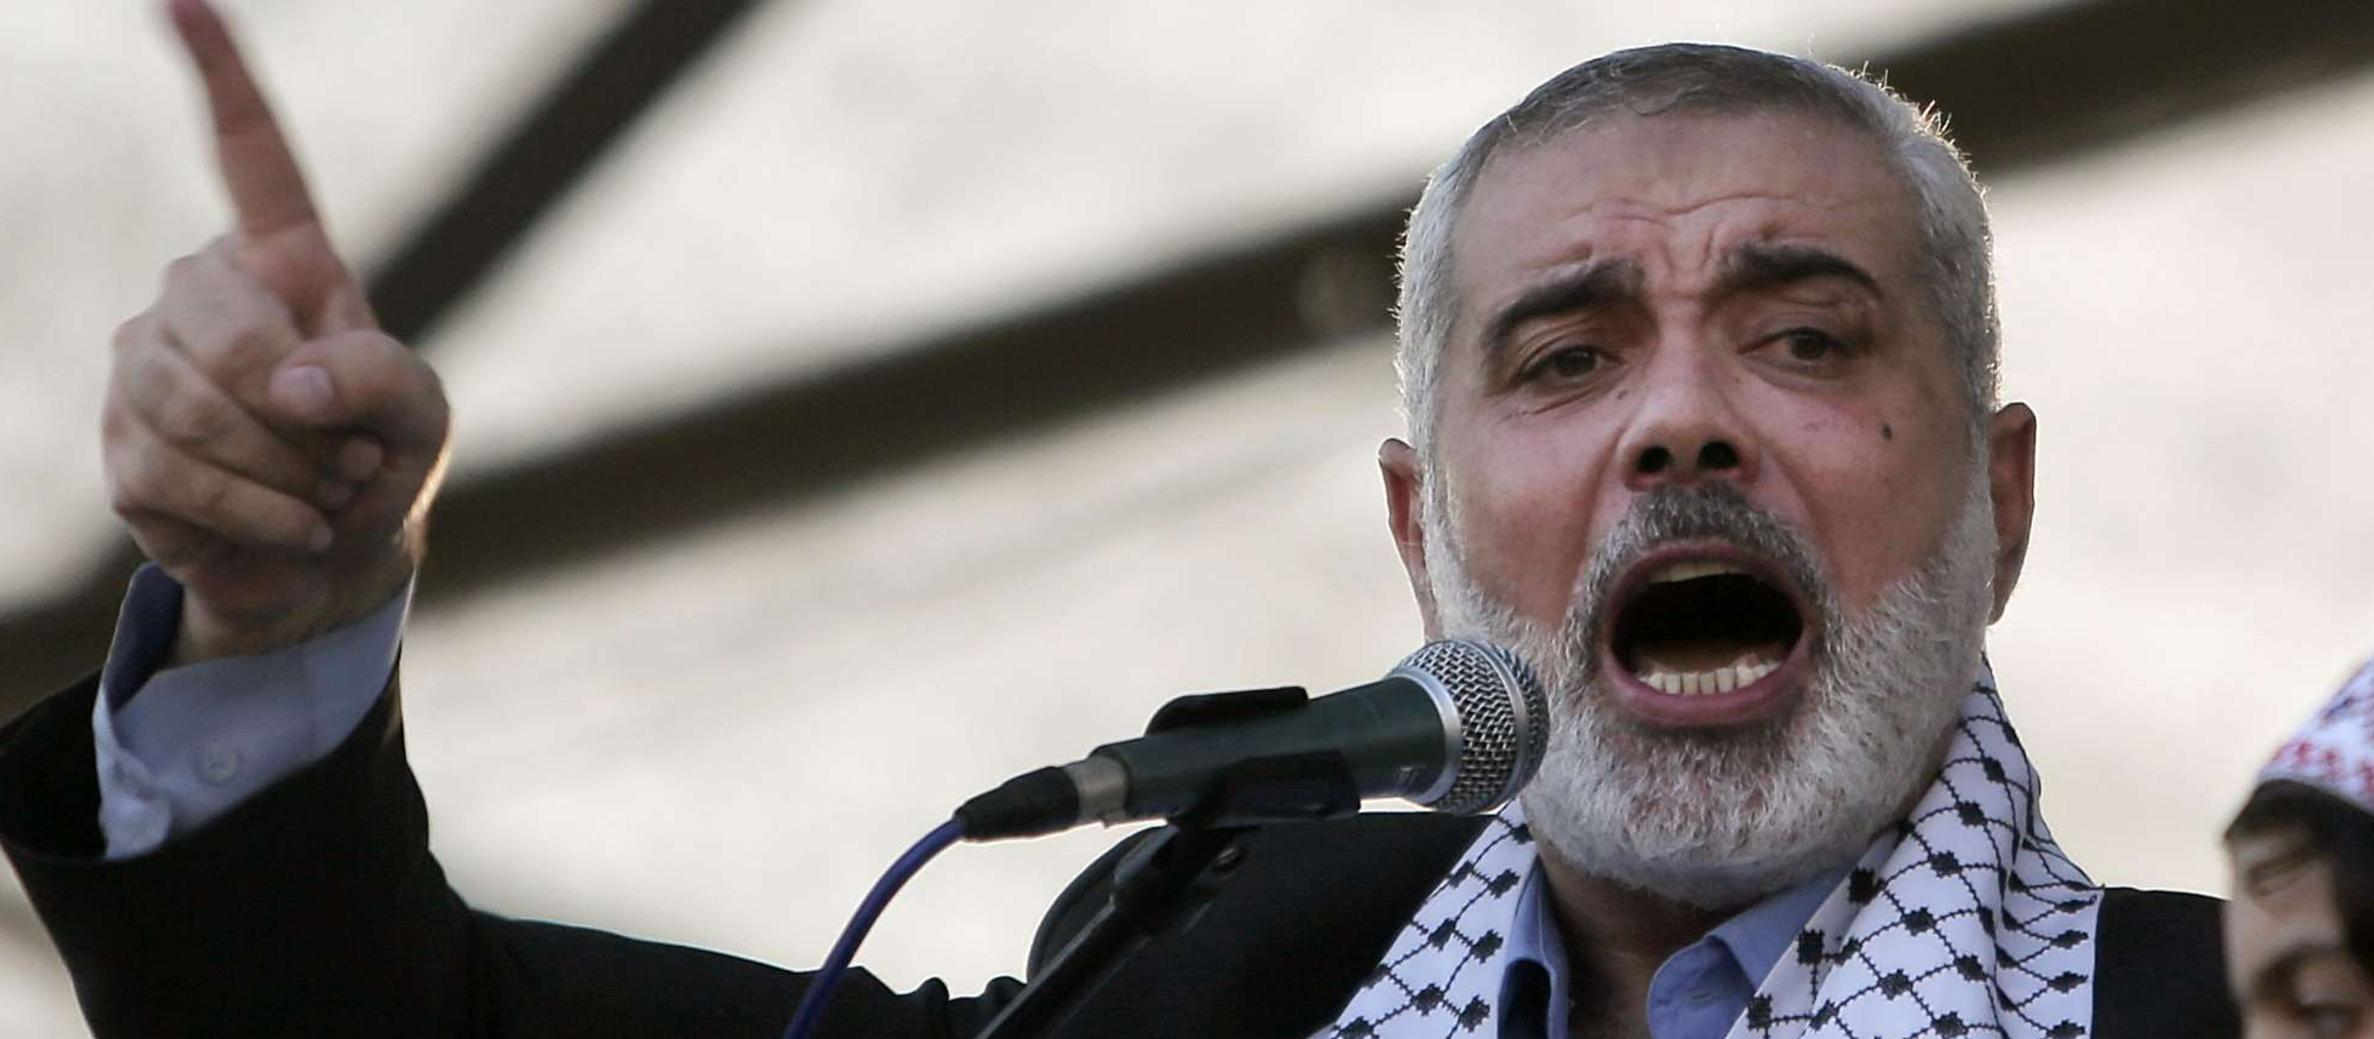 Hamas praises murder of Israeli civilian, promises more attacks